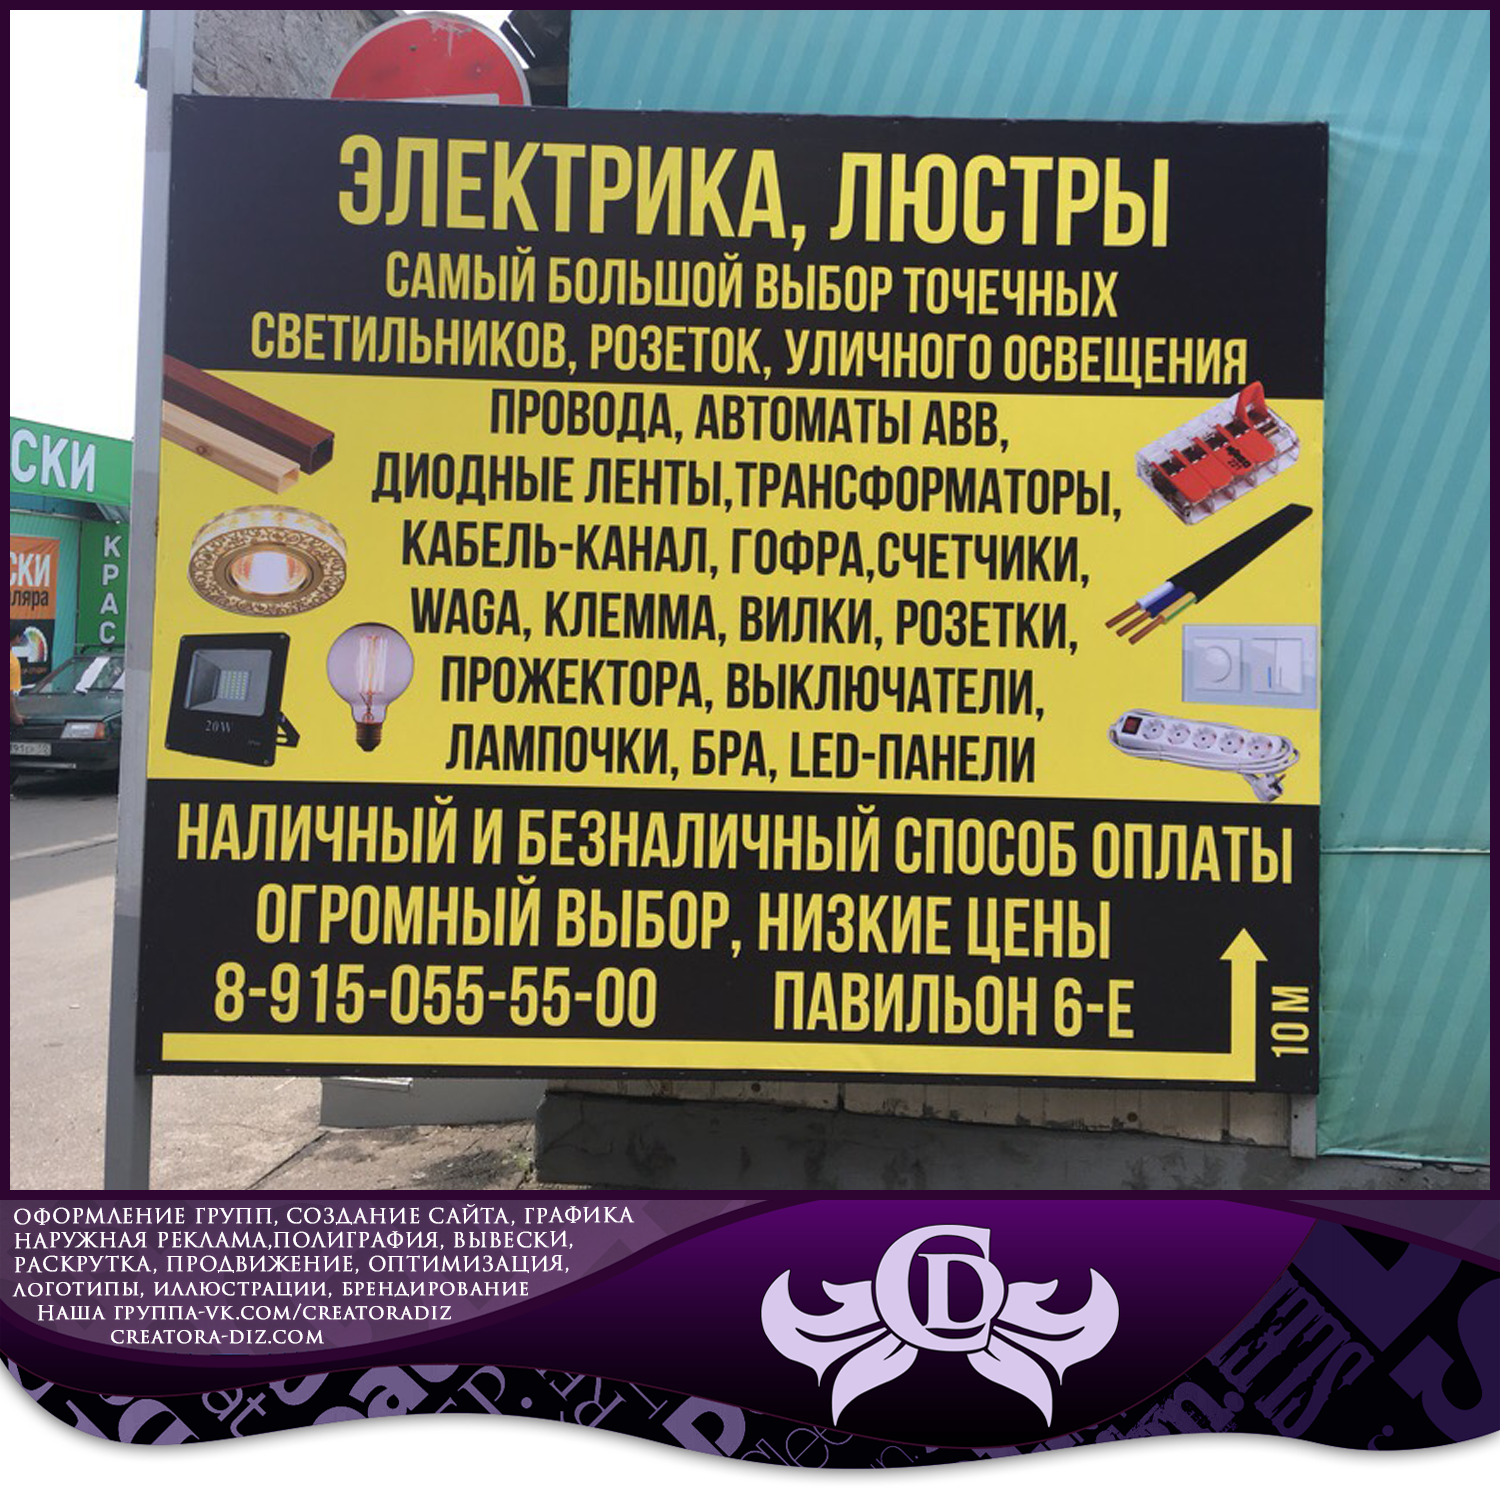 http://images.vfl.ru/ii/1532207400/794679a3/22575579.png